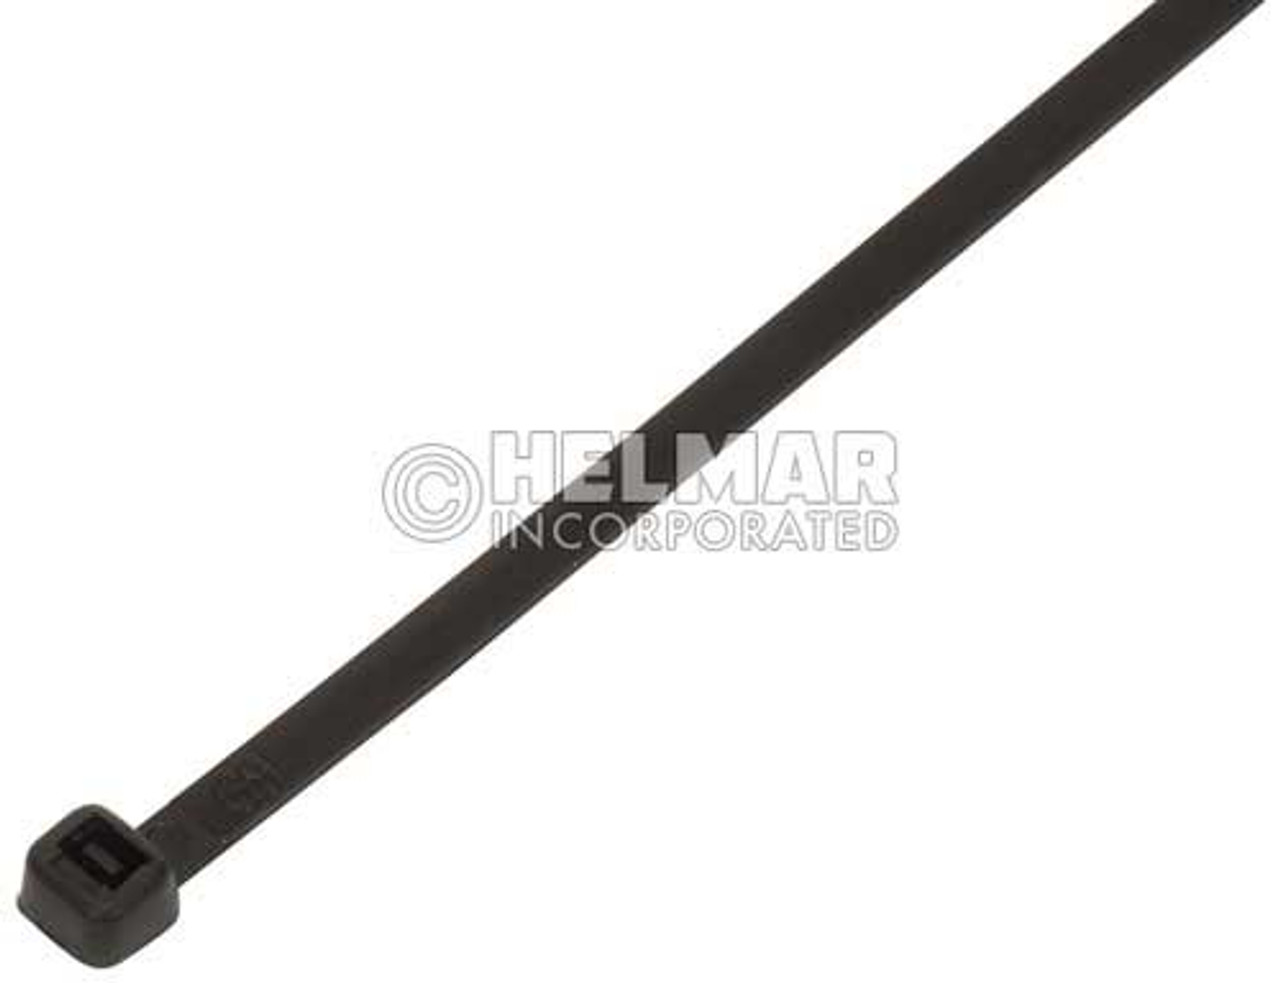 """05724 Cable Tie 5"""" Length, Black"""